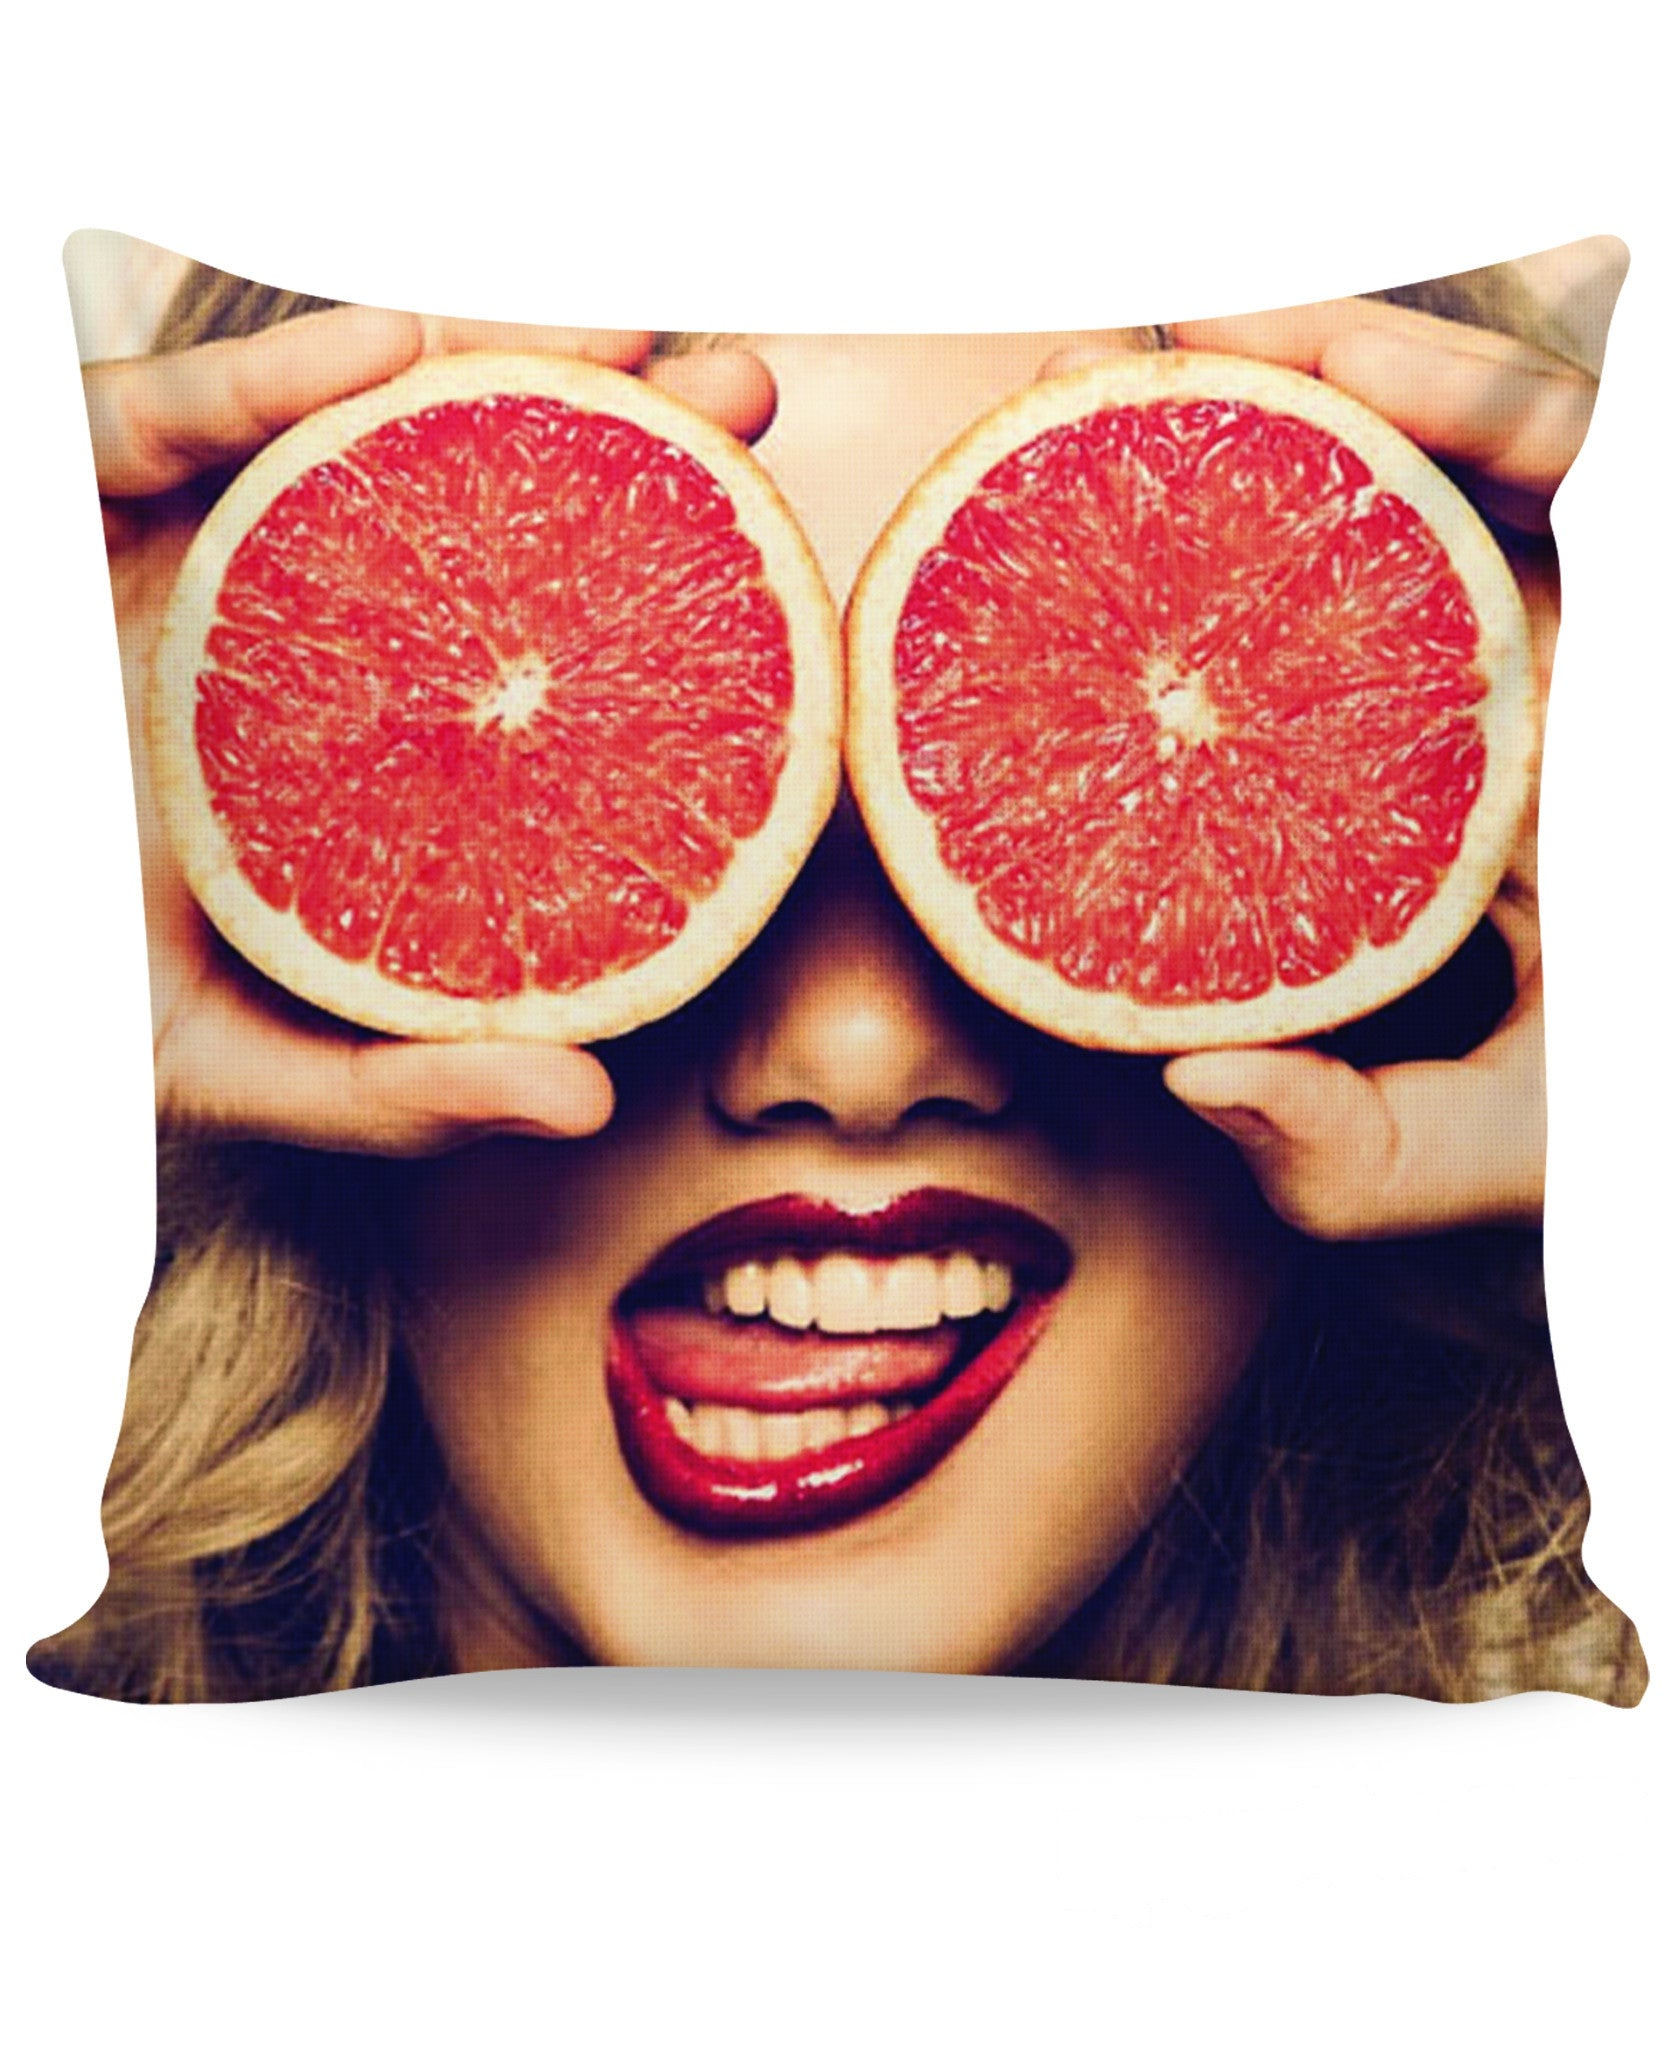 Fruity Flirt Couch Pillow